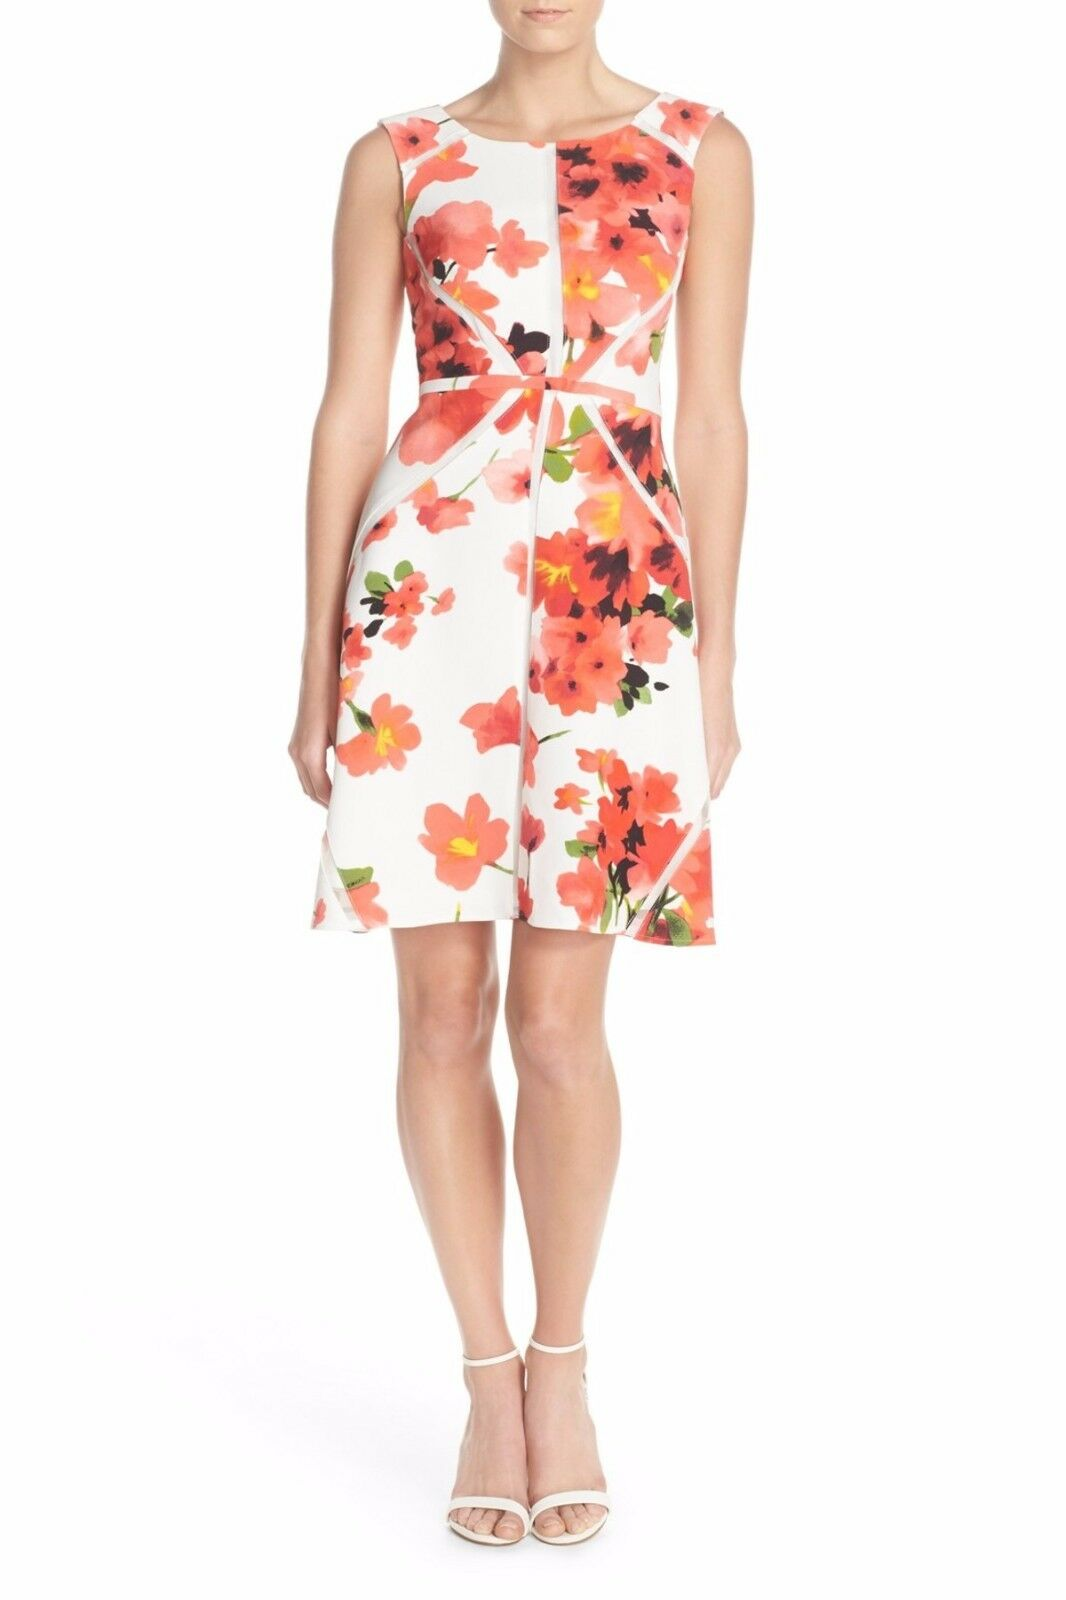 Adrianna Papell Floral Print with Mesh Inset Fit & Flare Dress (size 10)